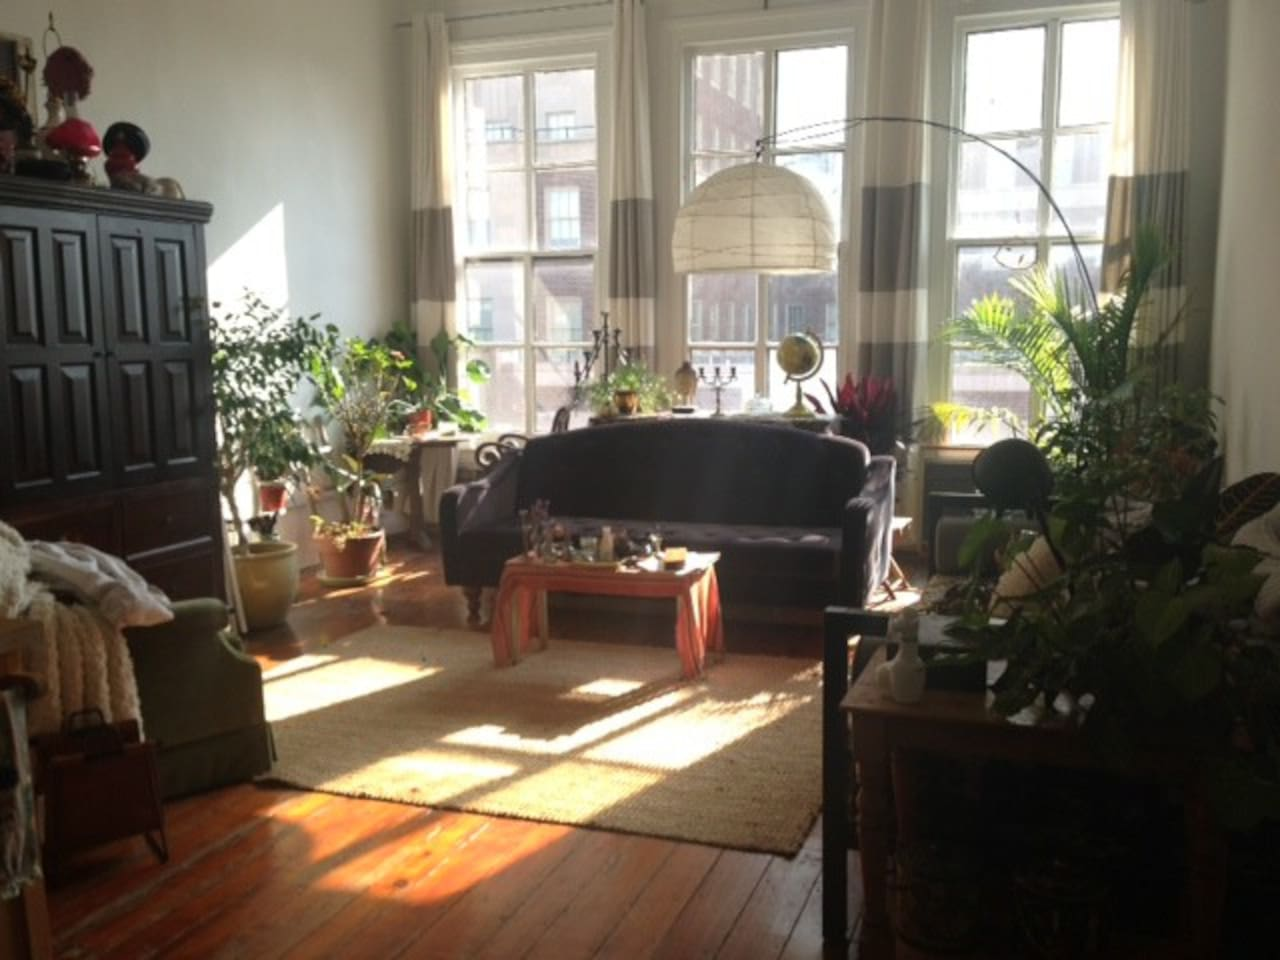 Incredible sunlight in the comfy living room